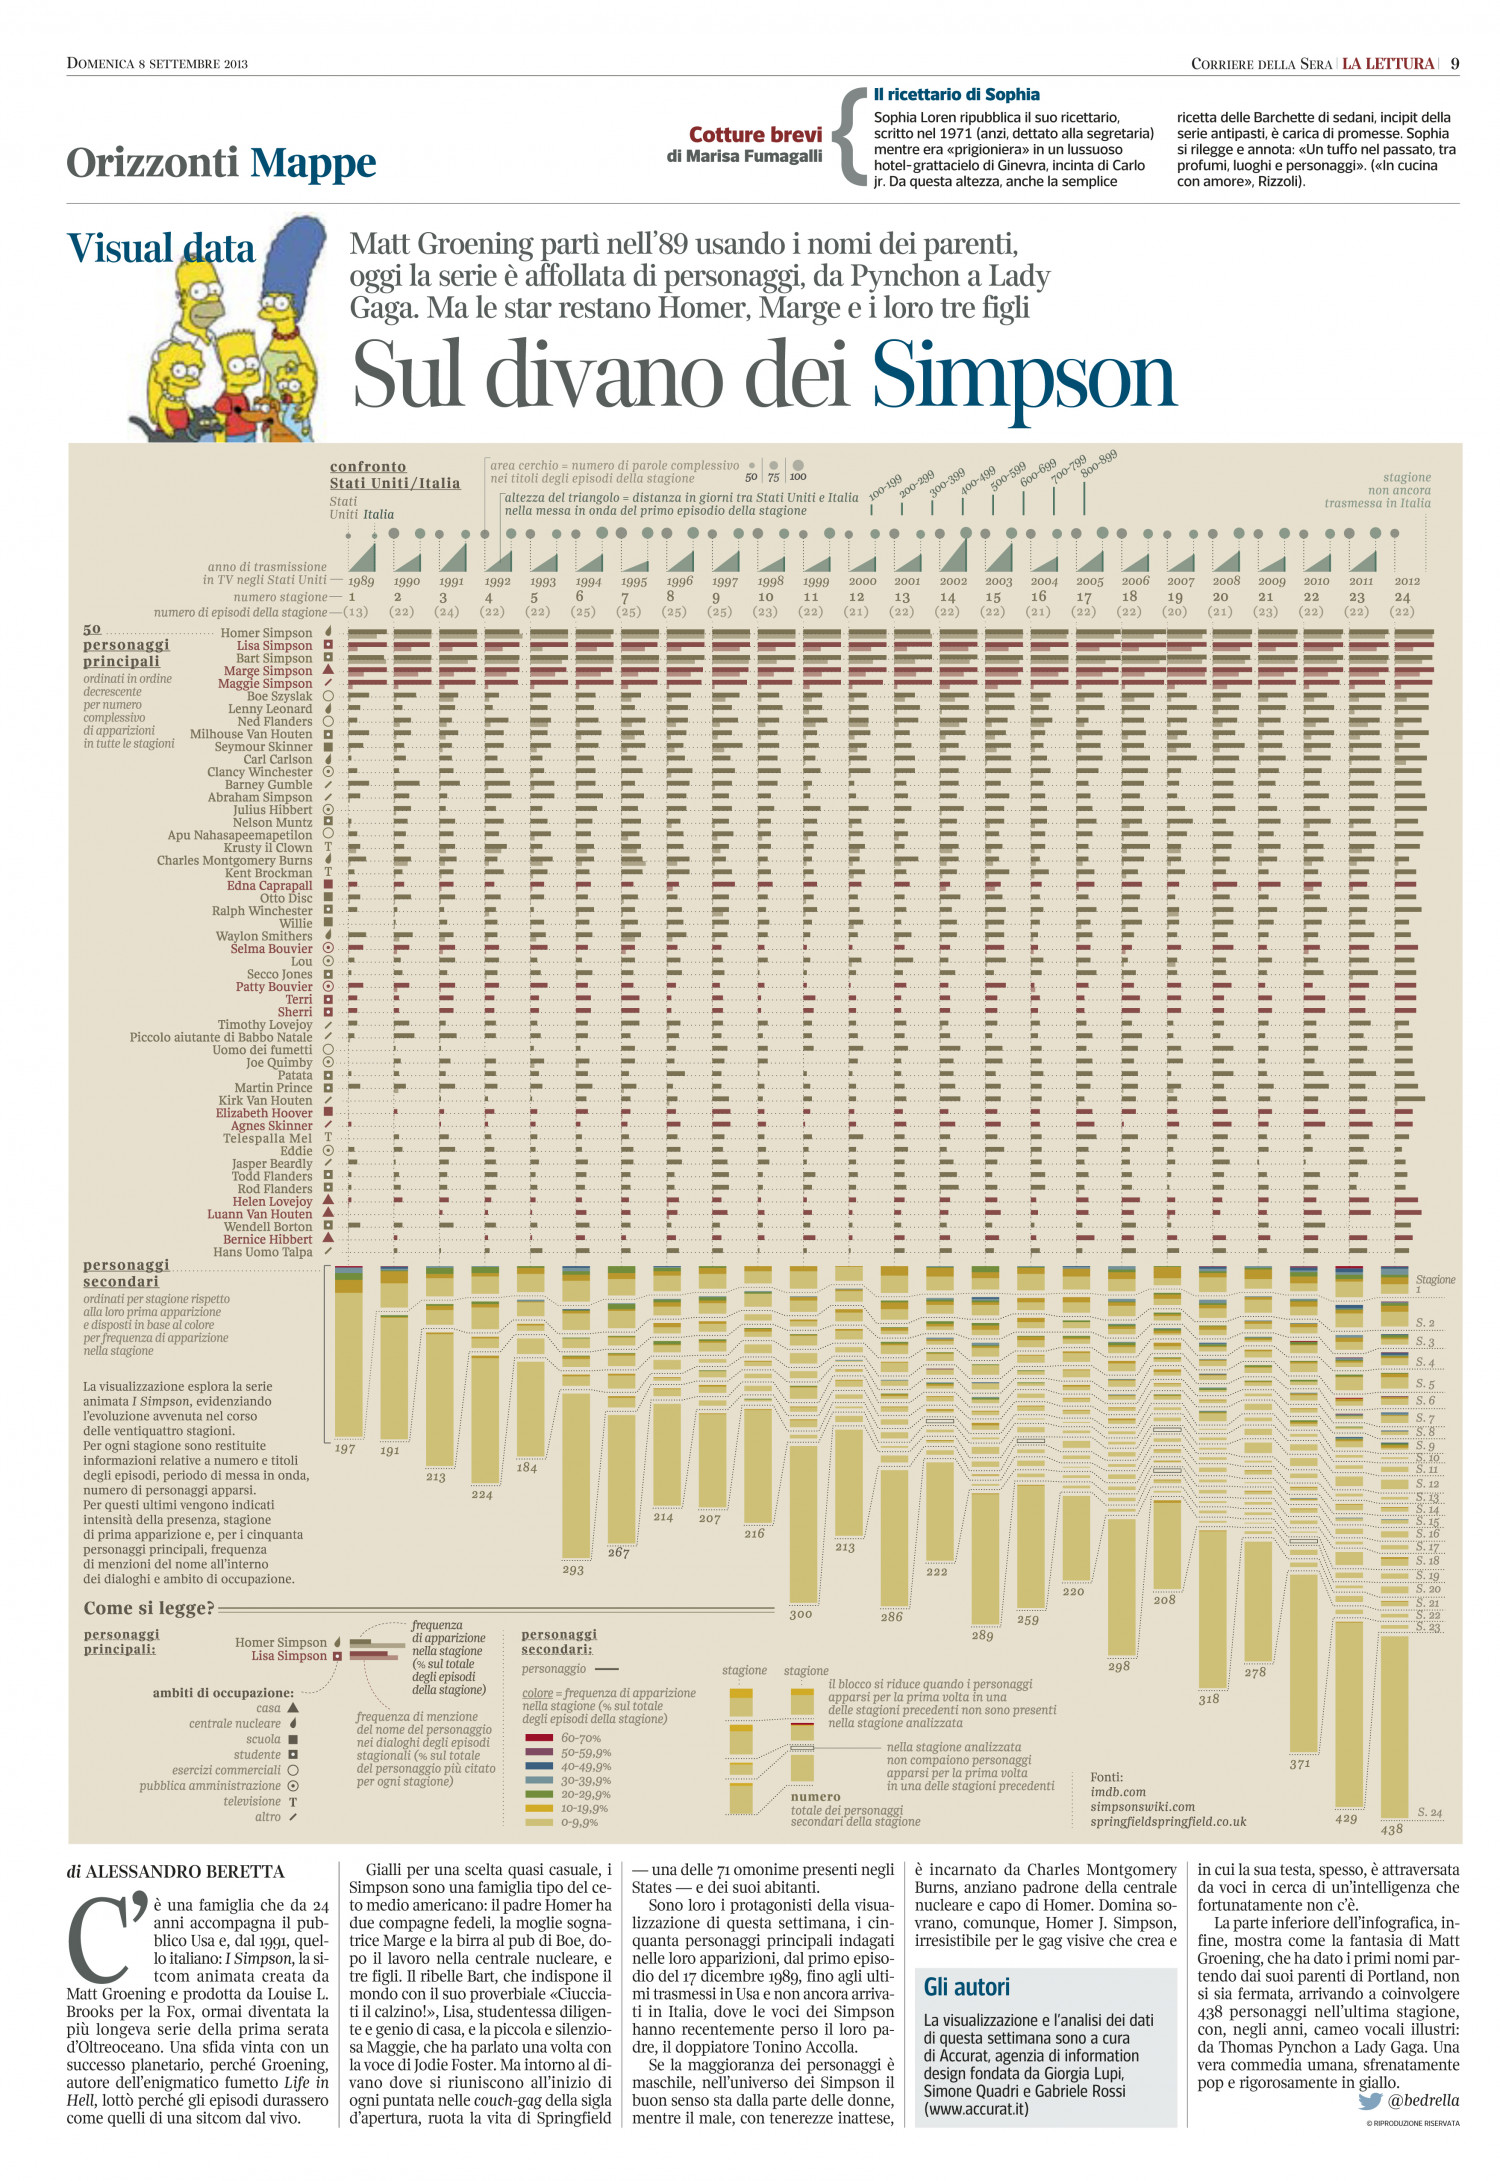 Visualising the Simpsons Infographic